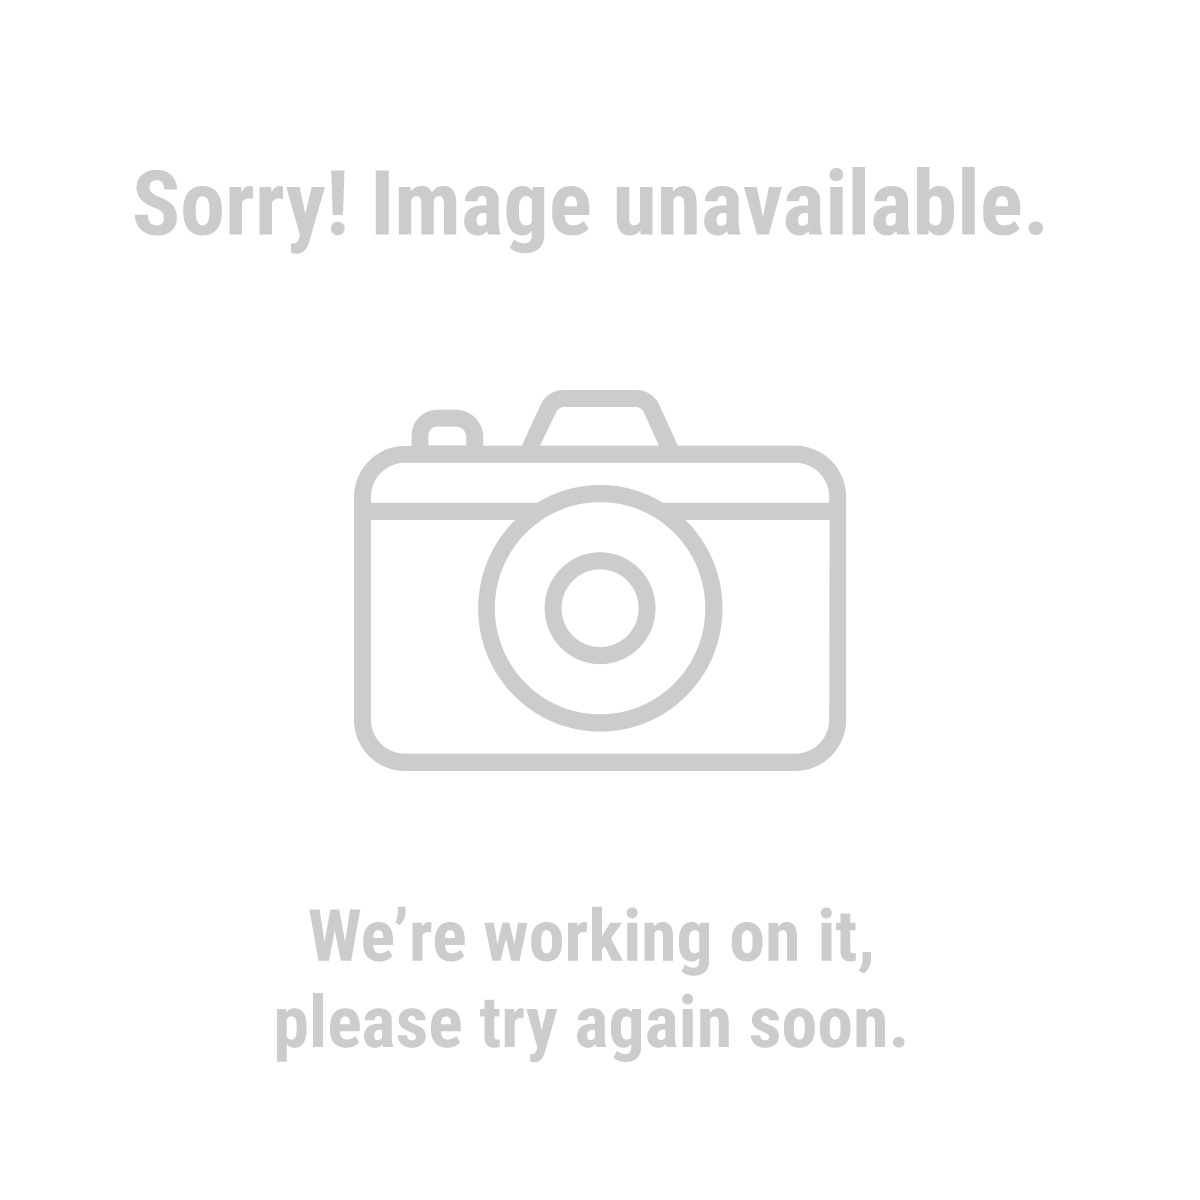 "Haul-Master 67469 13-5/32"" x 3-7/16""  Flatfree Tire"